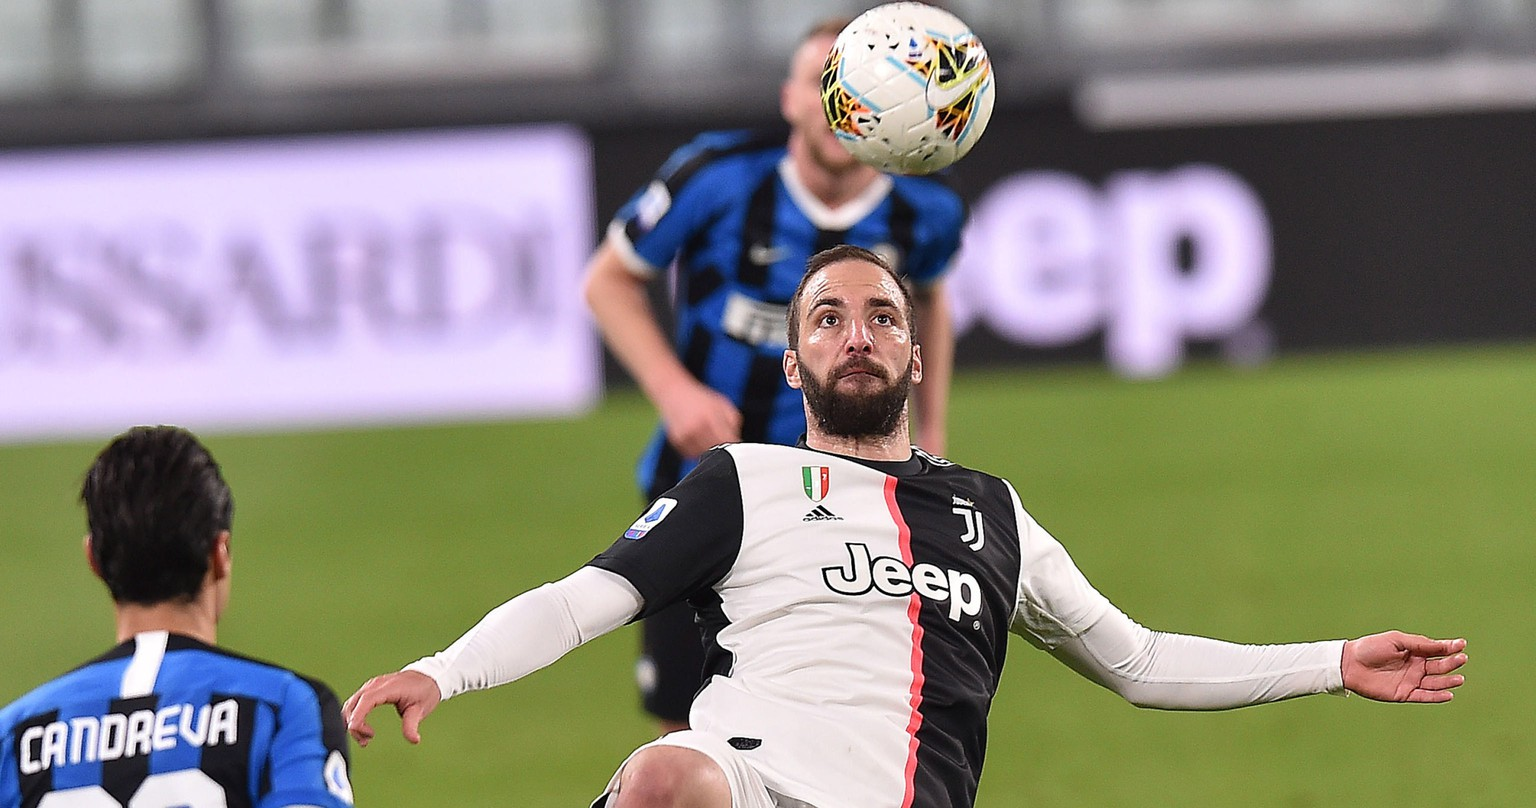 epa08279697 Juventus'  Gonzalo Higuain in action during the Italian Serie A soccer match Juventus FC vs FC Internazionale Milano at the Allianz Stadium in Turin, Italy, 08 March 2020.  EPA/ALESSANDRO DI MARCO